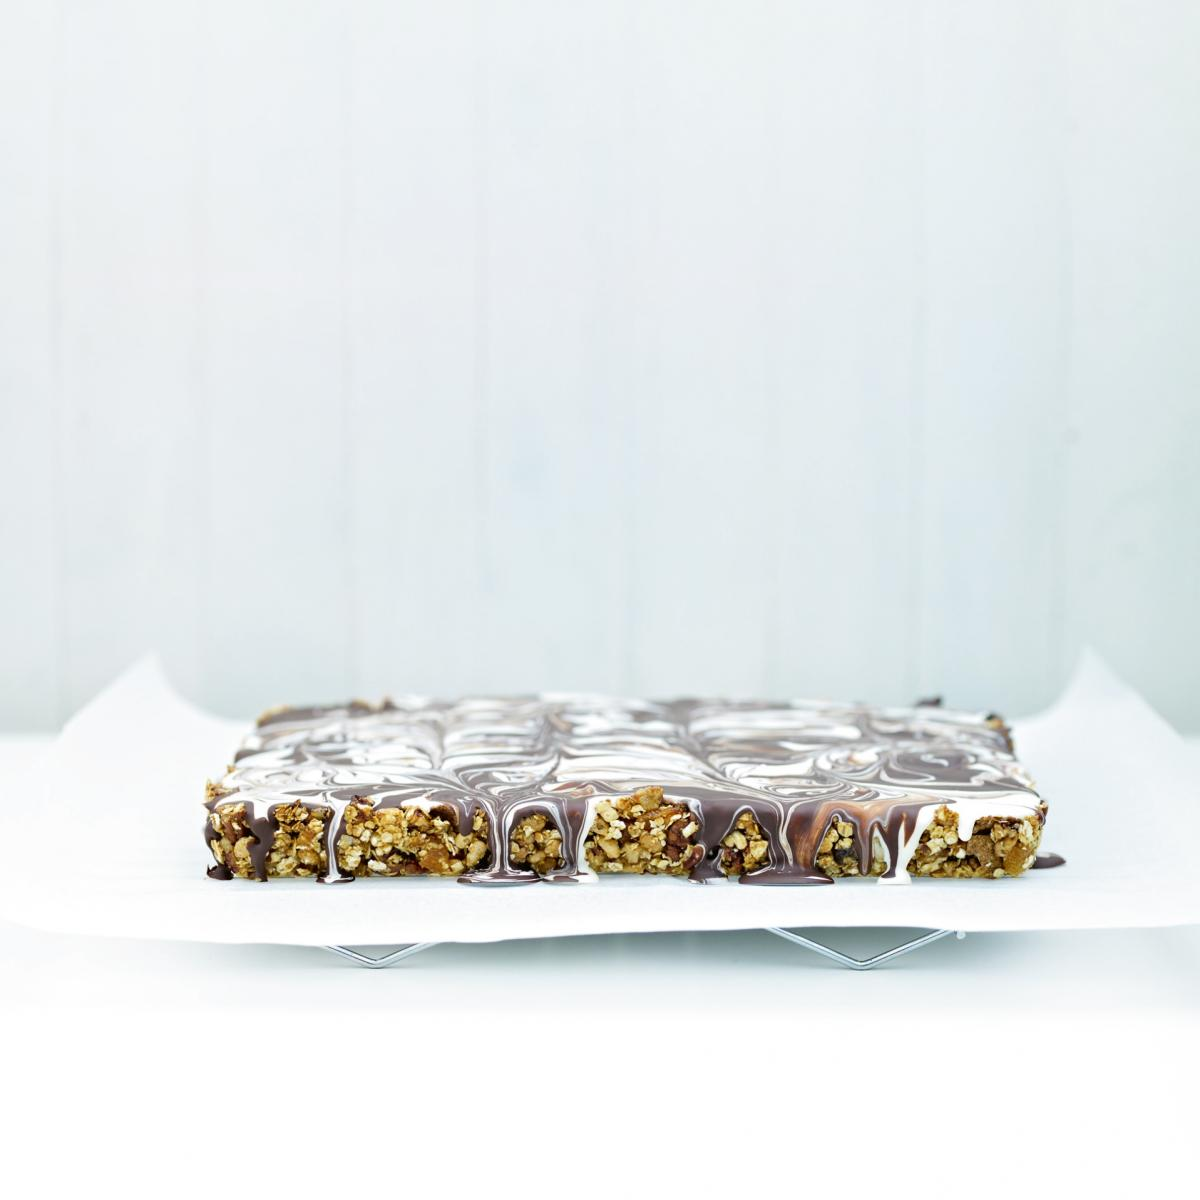 A picture of Delia's Chocolate Marbled Energy Bars recipe